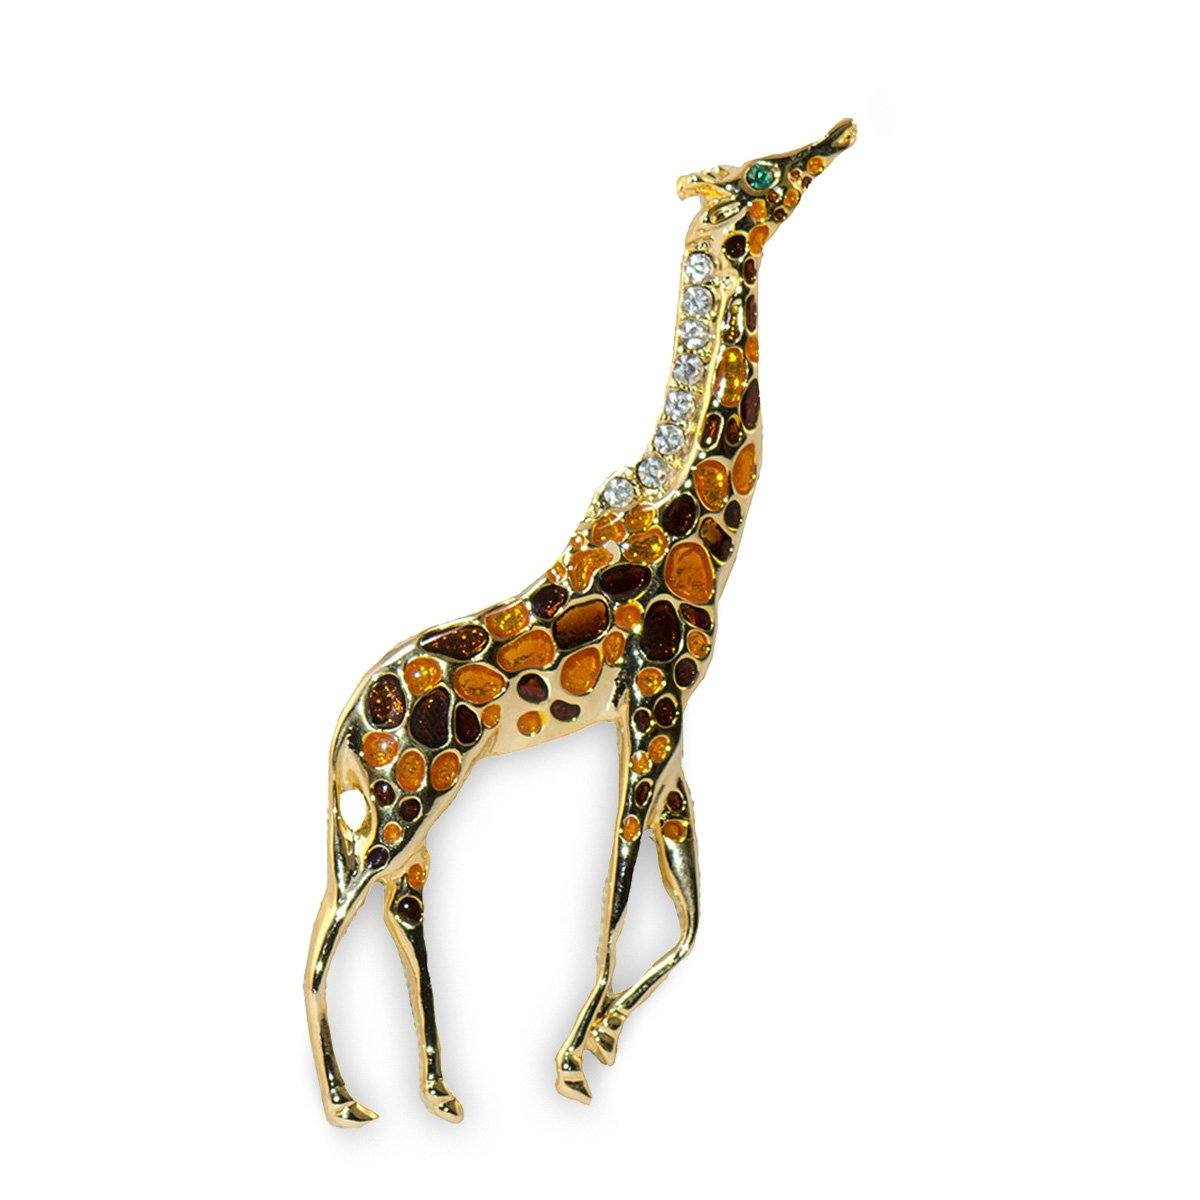 Poured Glass Giraffe Brooch, Rhinestones, Gold Metal